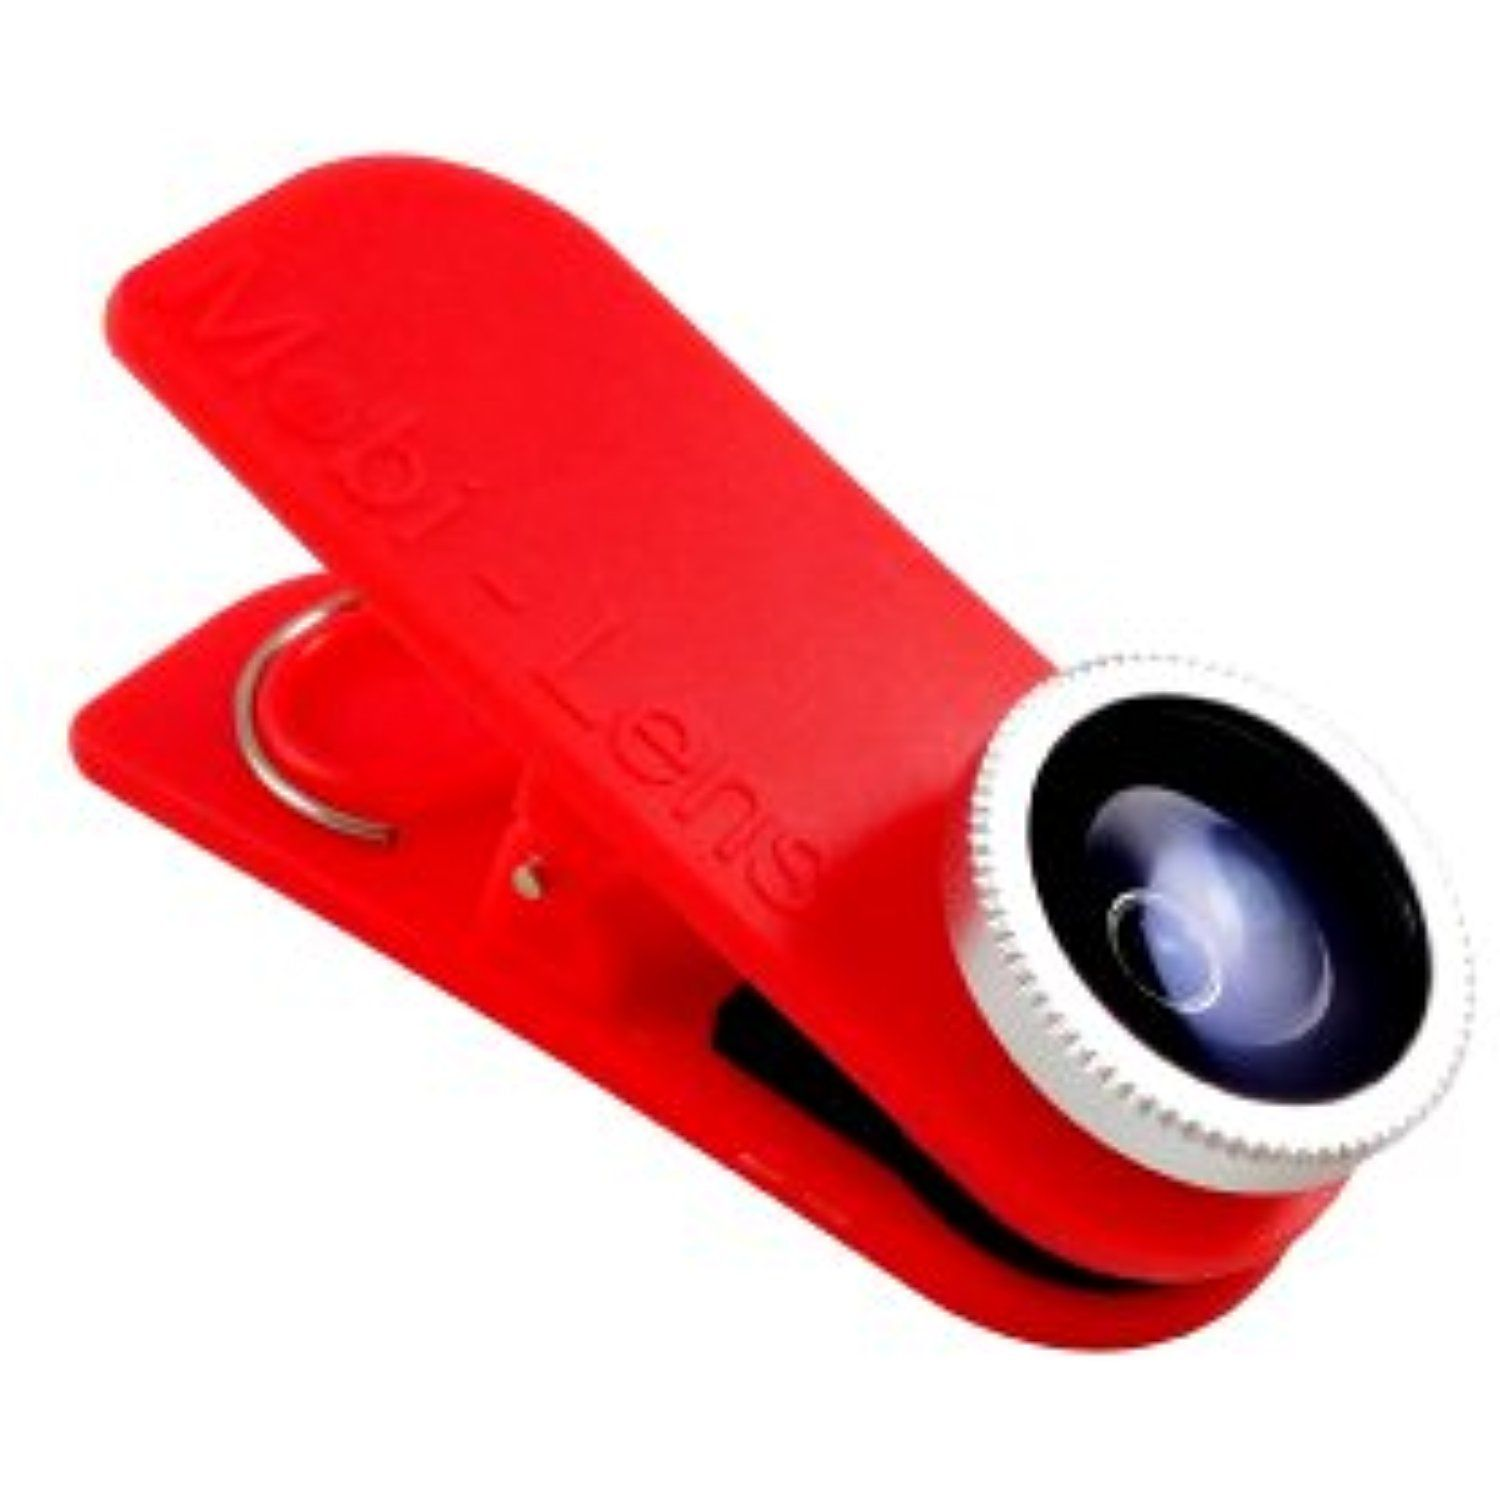 Mobi Lens Fisheye Cell Phone Camera Lens for iPhone 6 Samsung Galaxy 5 Red